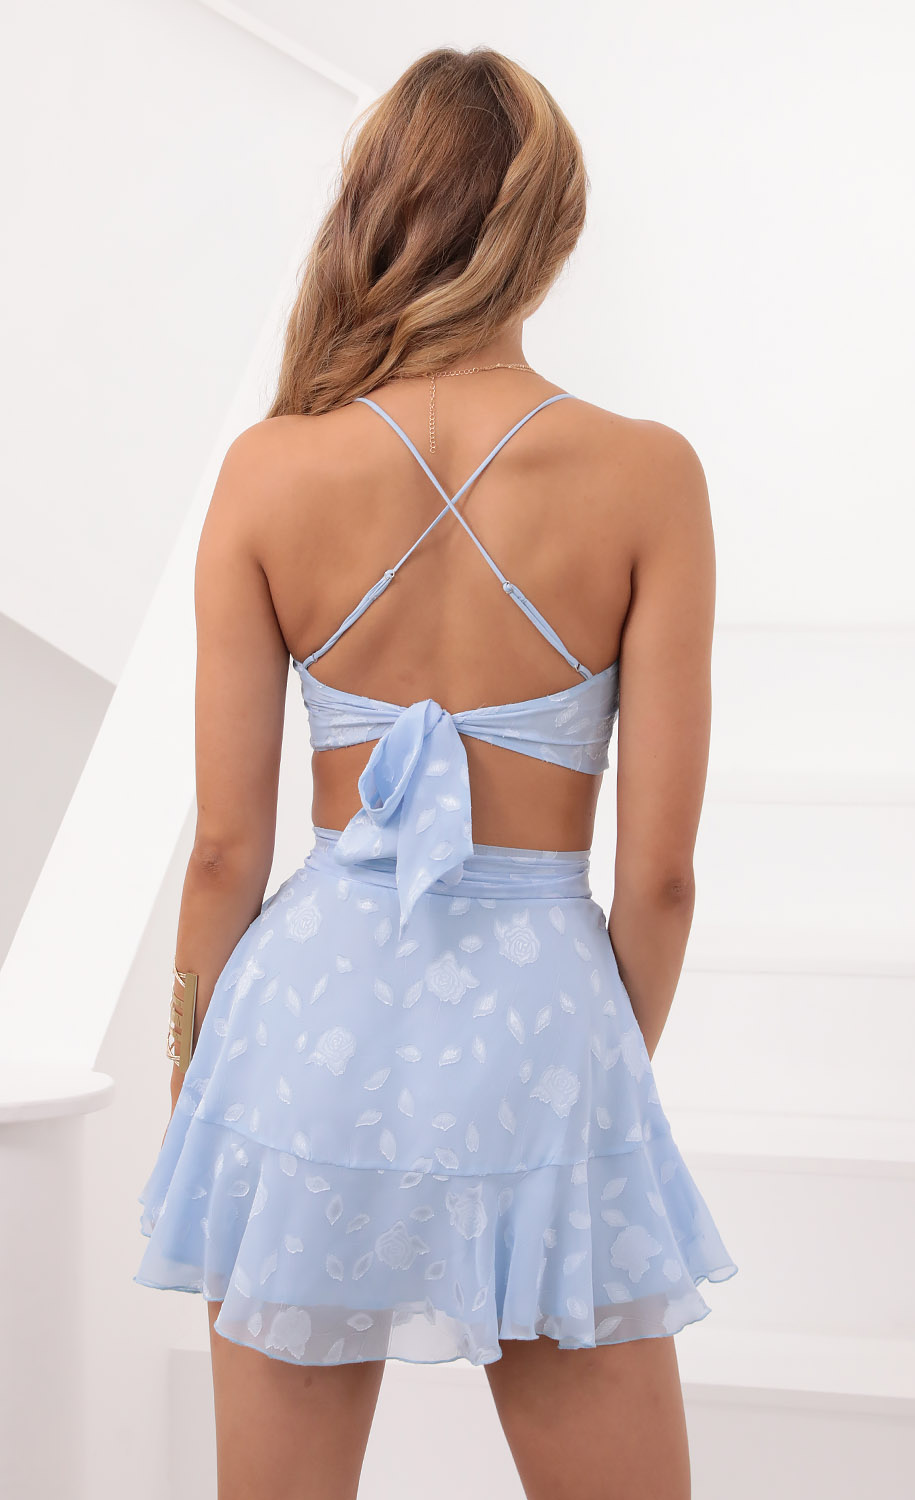 Skirts > Maria Wrap Set in Sky Blue Floral Chiffon